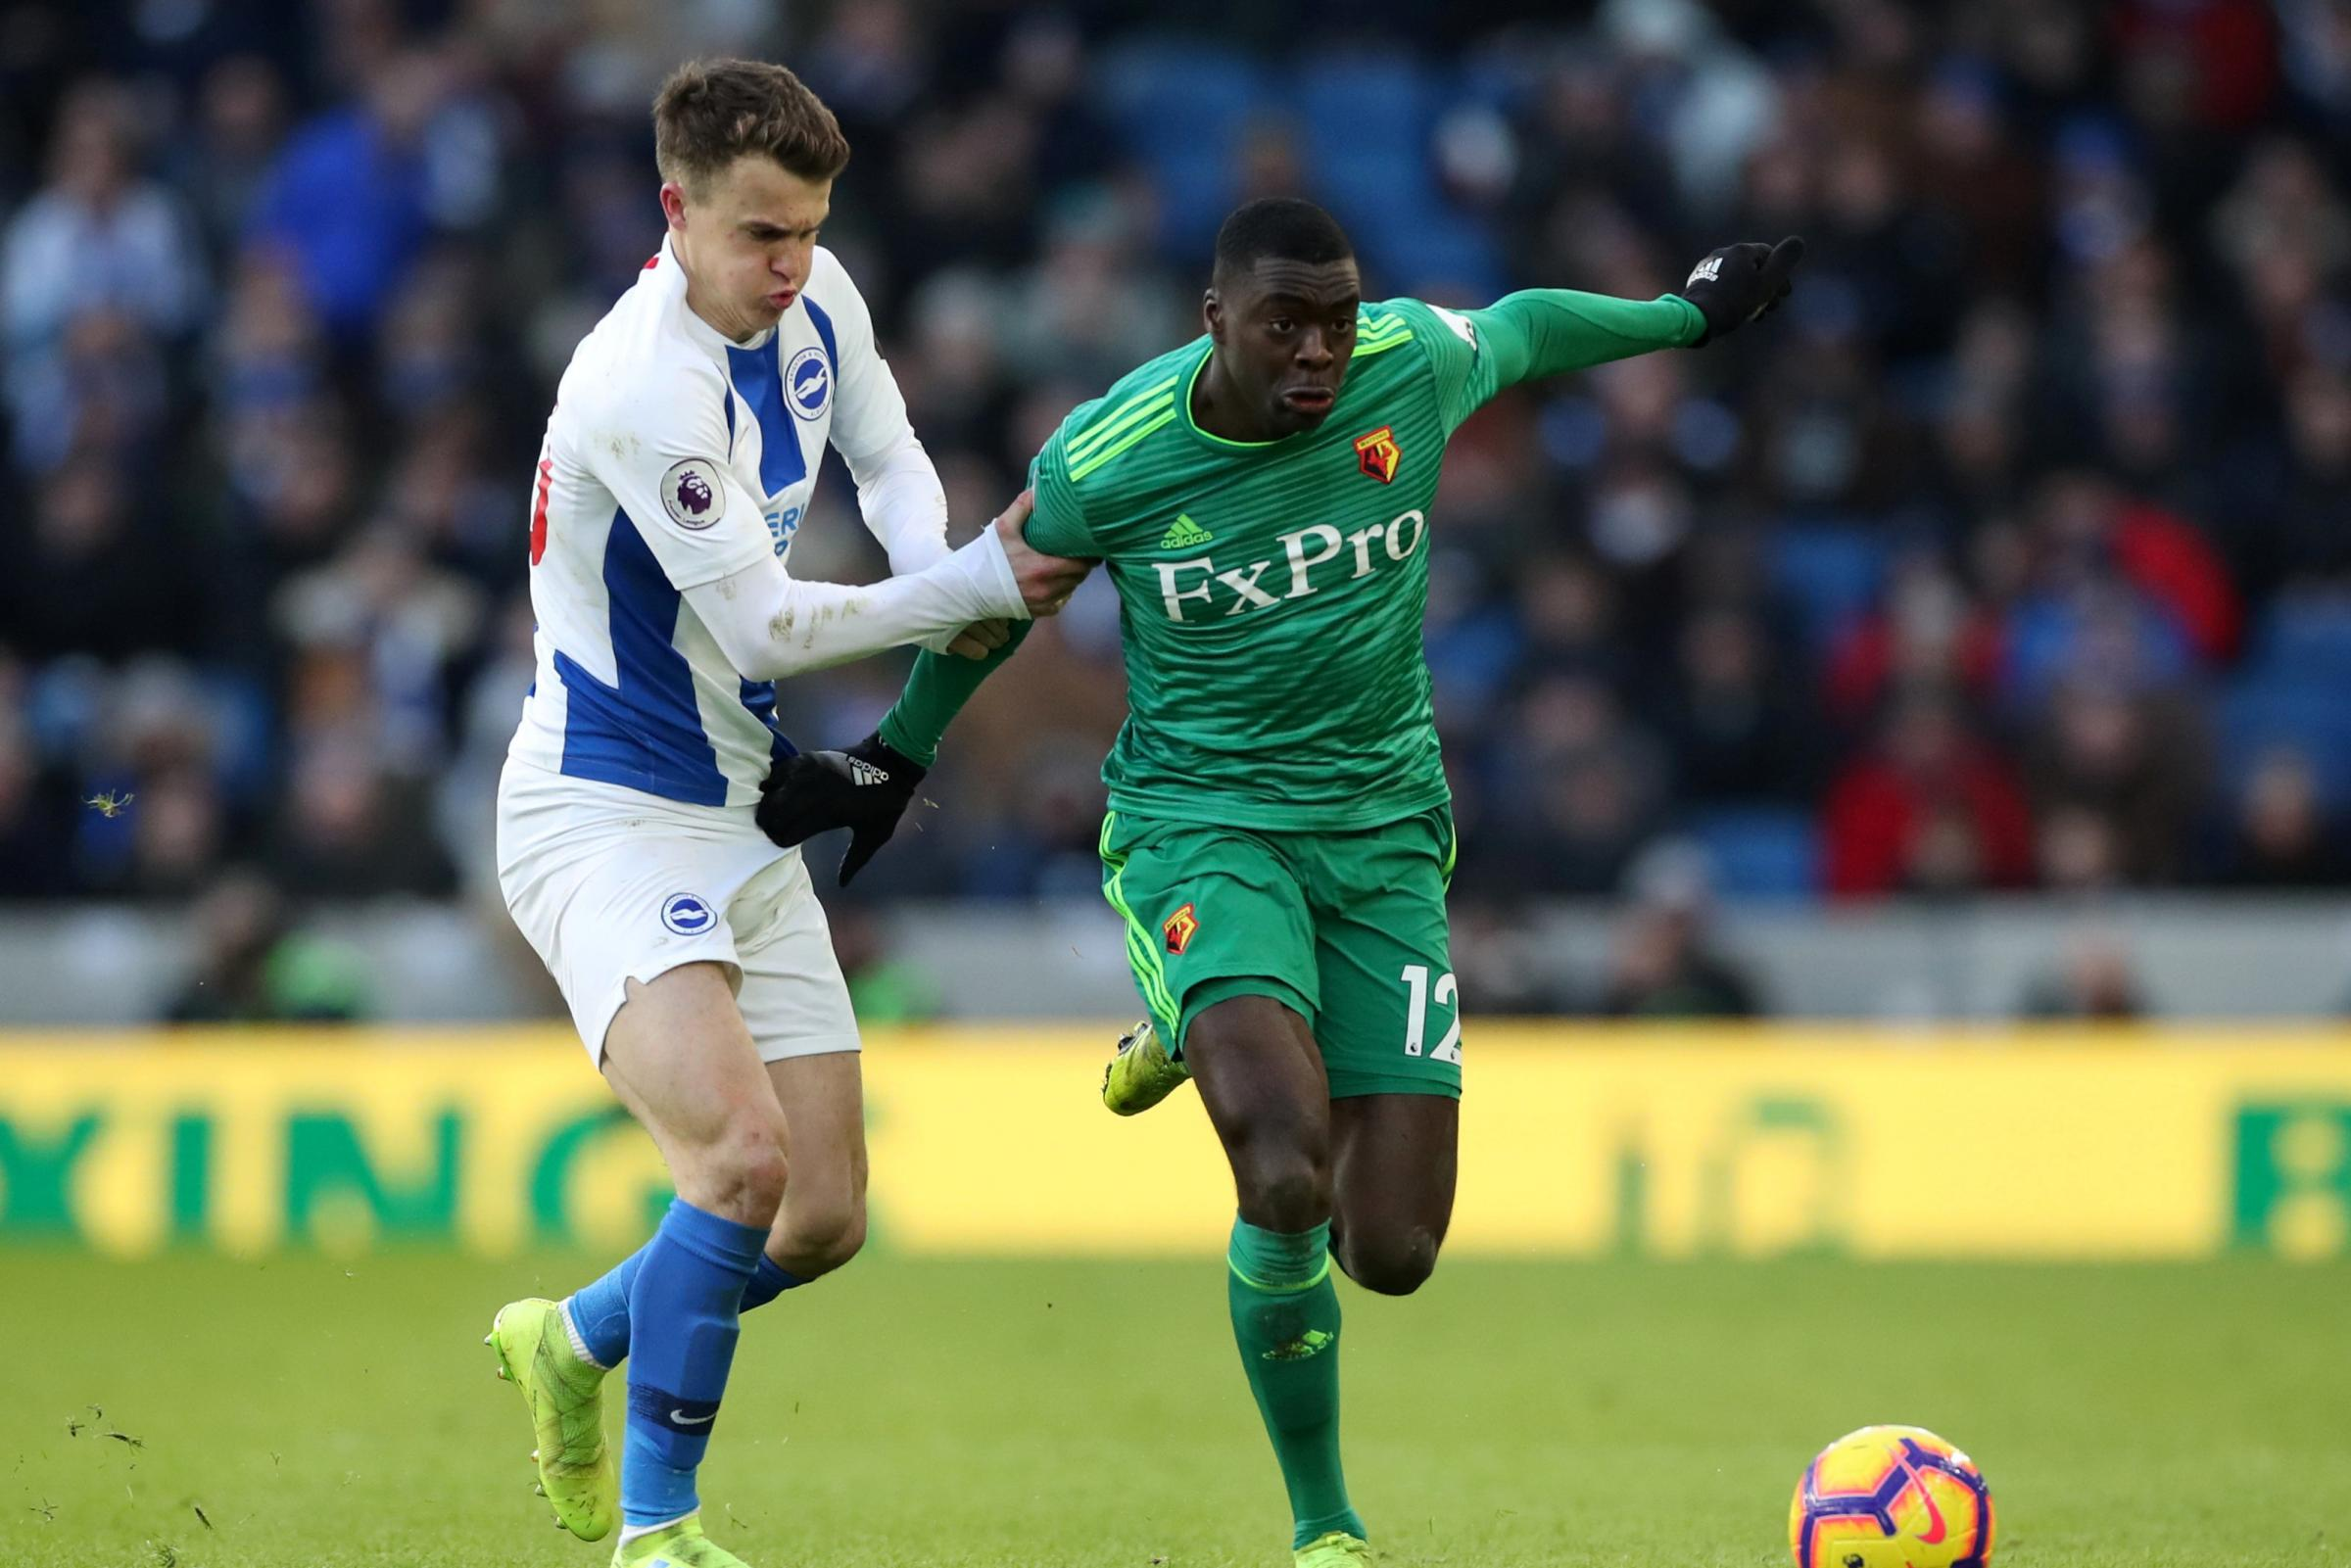 Watford winger Ken Sema has joined Udinese on loan